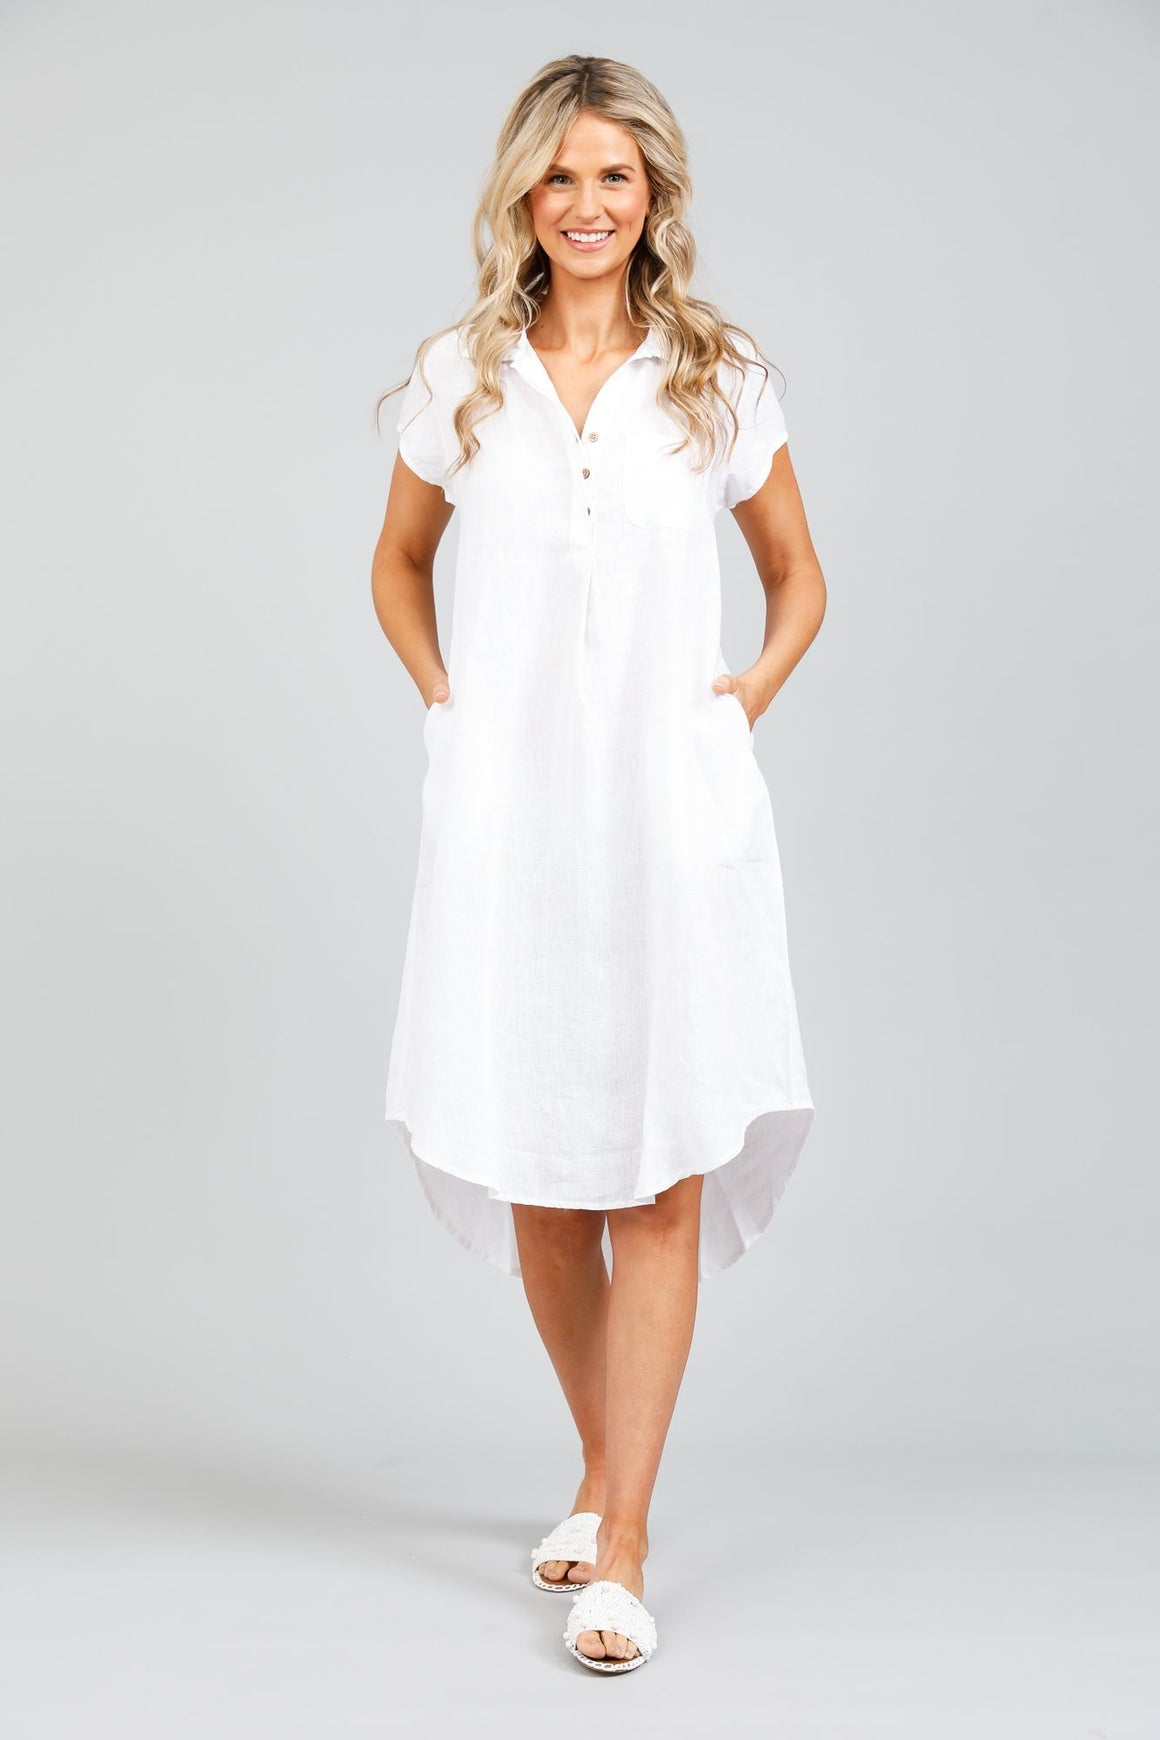 Holiday Ahoy Tunic Dress - White